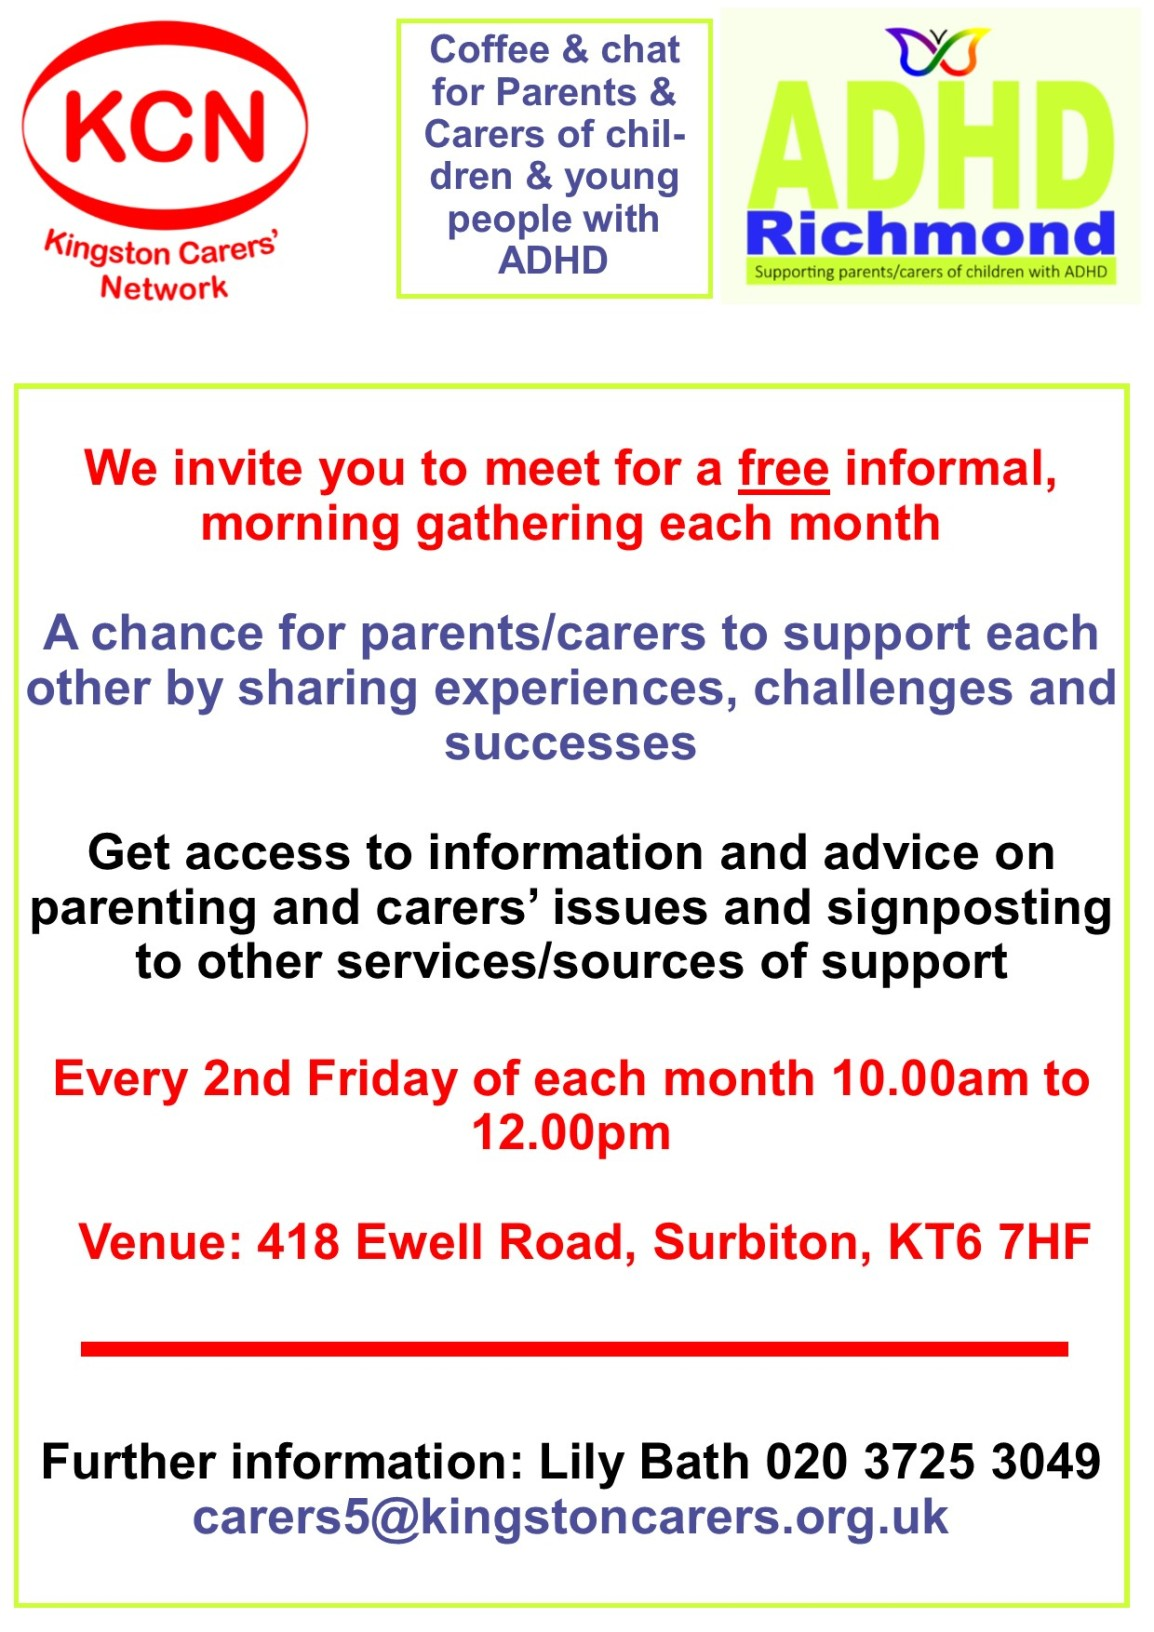 Need some #ADHD support today (Fri 8th)? Come for coffee & chat 10-12 with @KingstonCarers